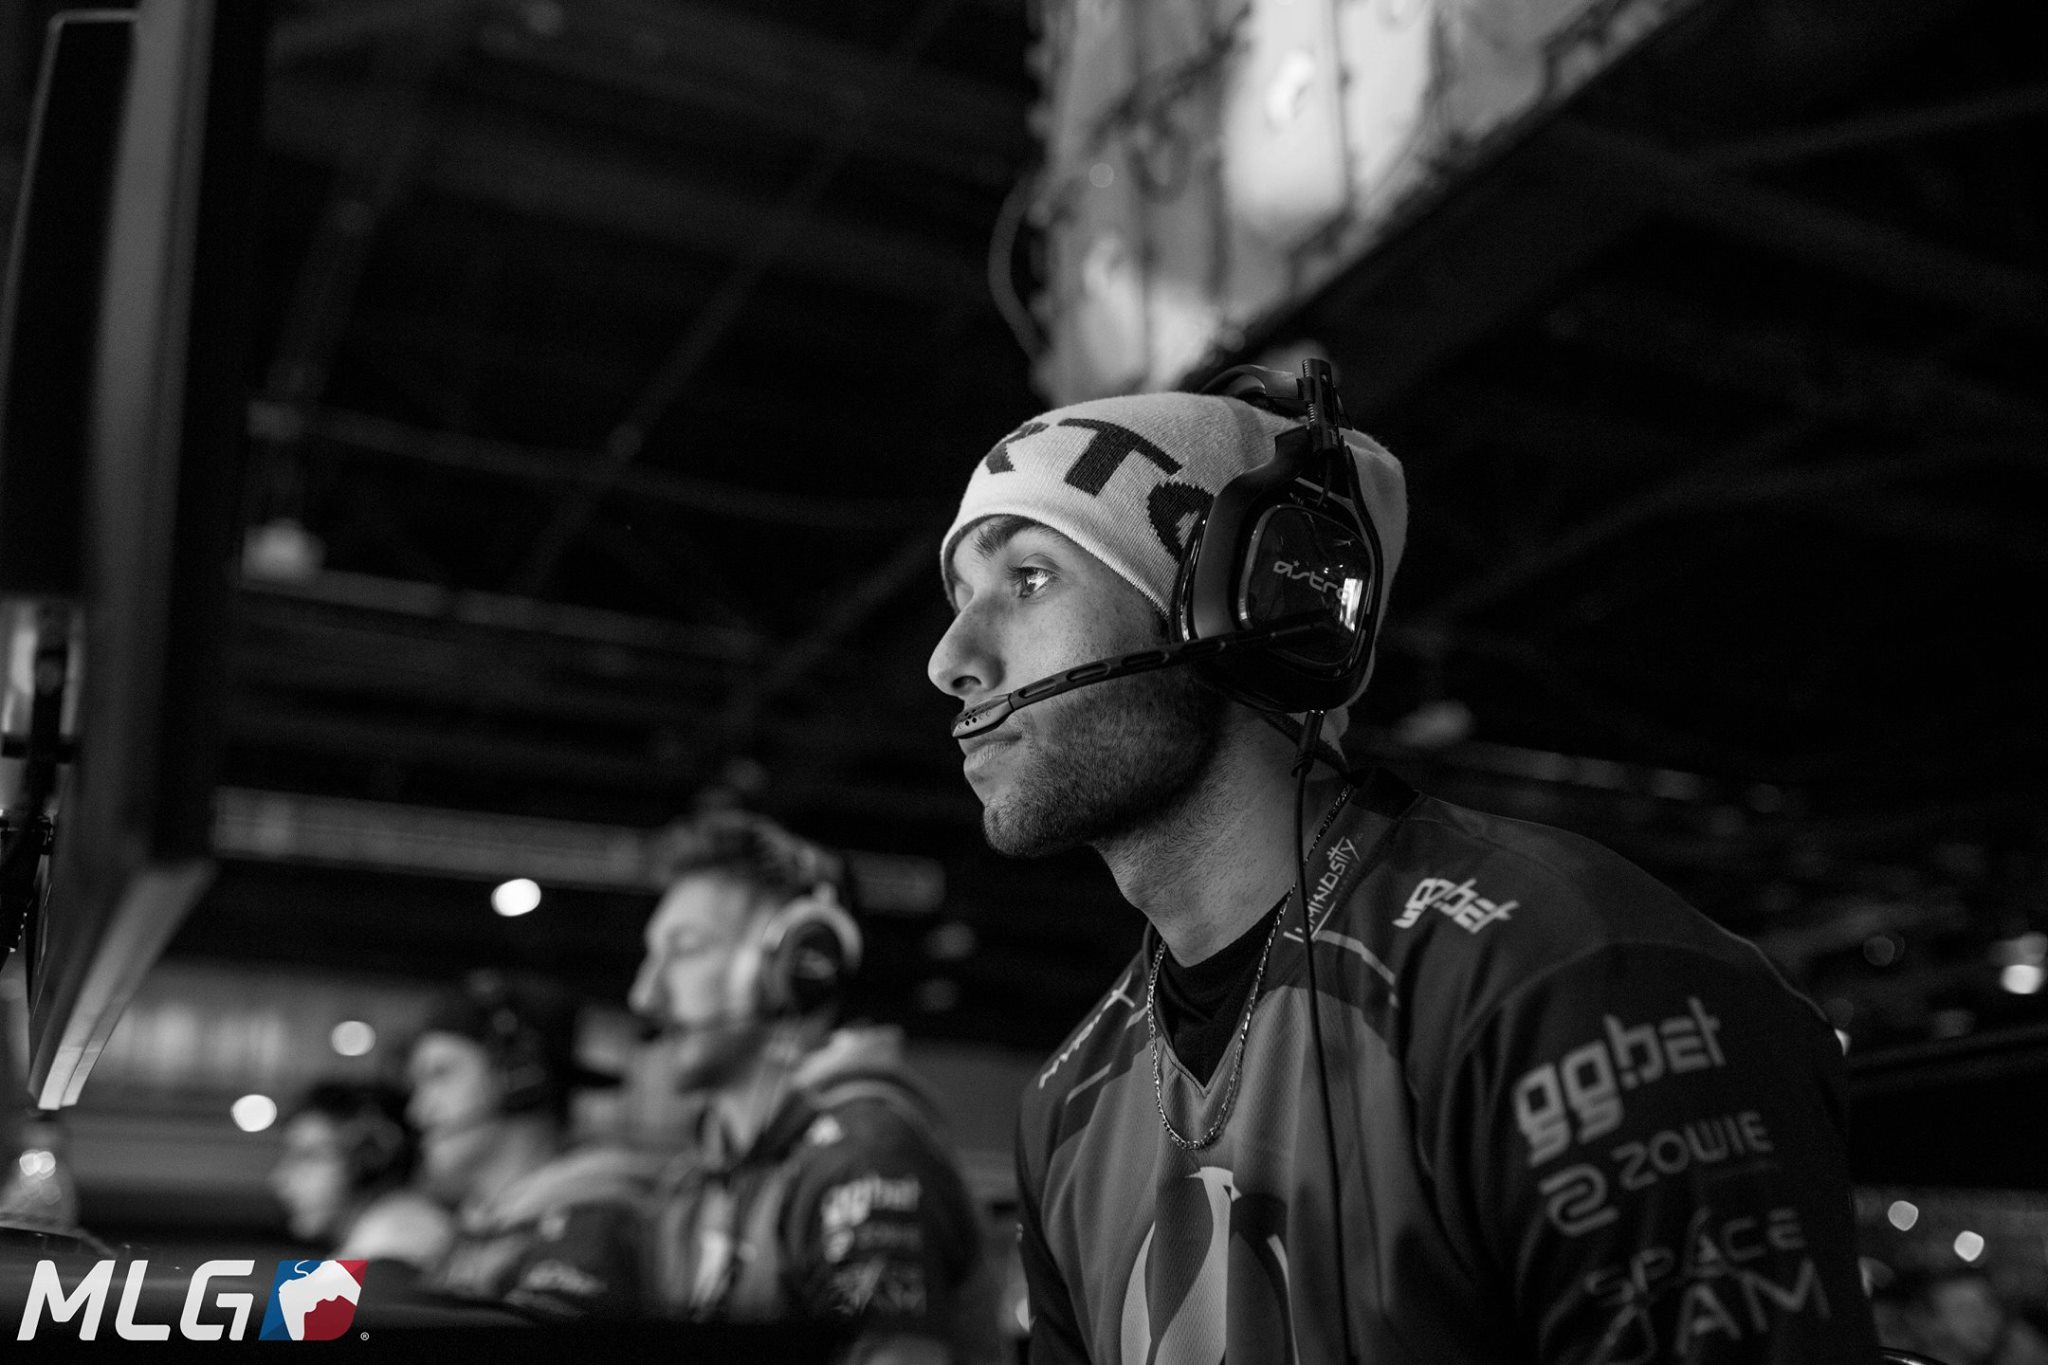 Classic at CWL Atlanta. Image courtesy of MLG.